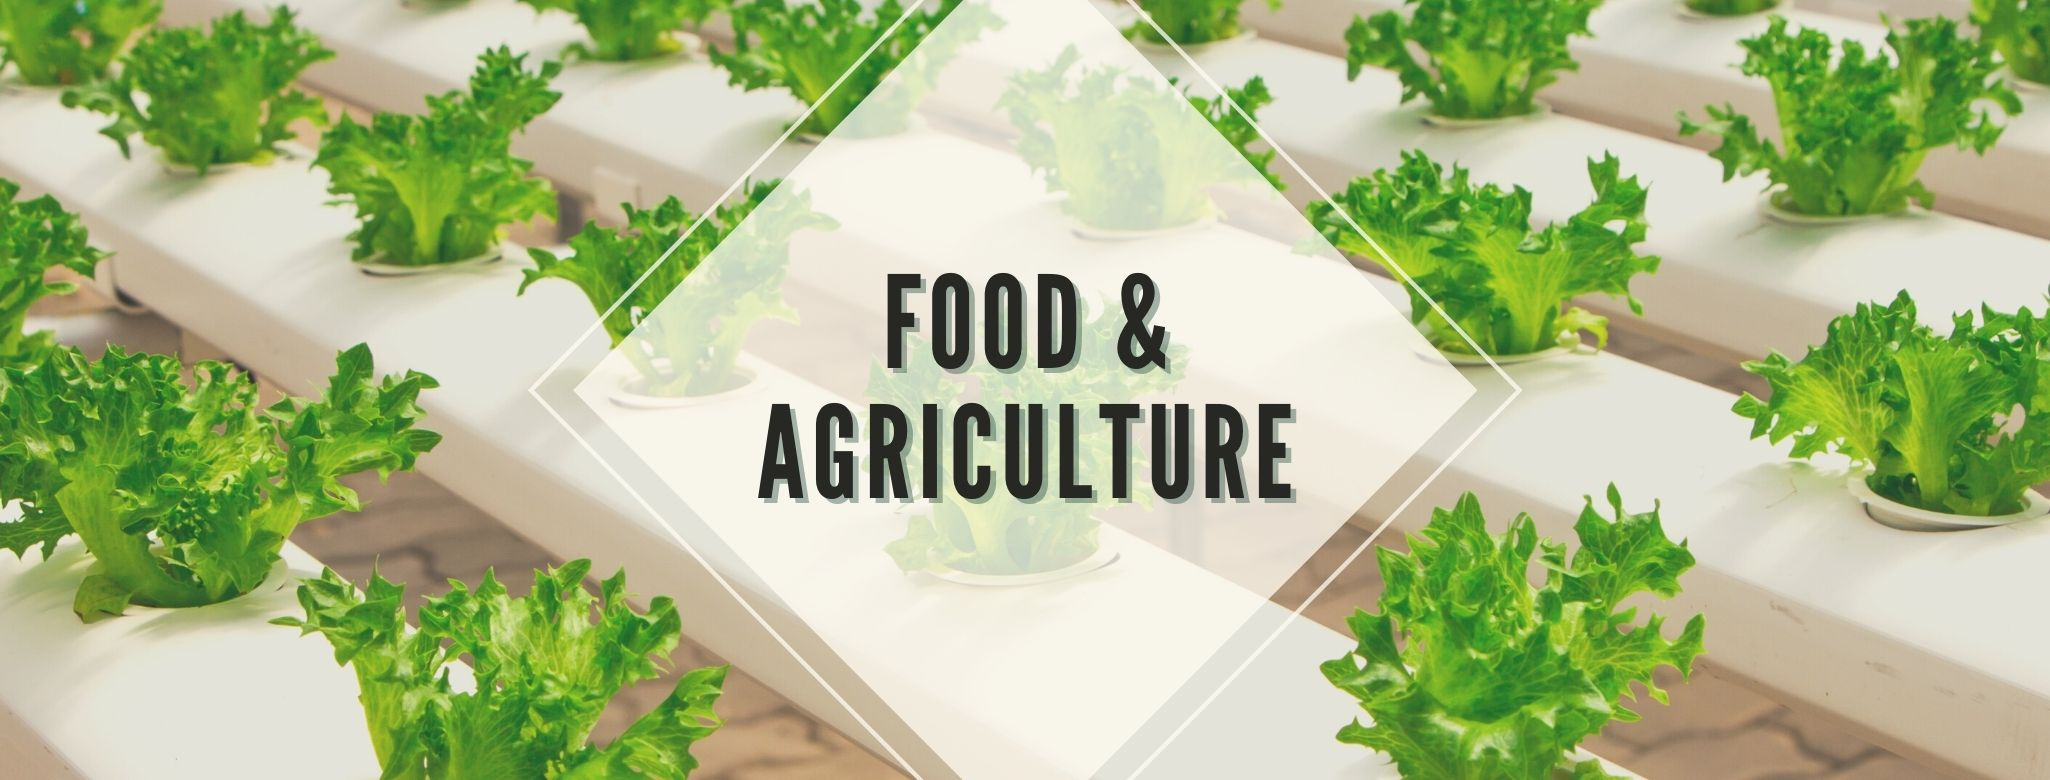 Link to Food and Agriculture page